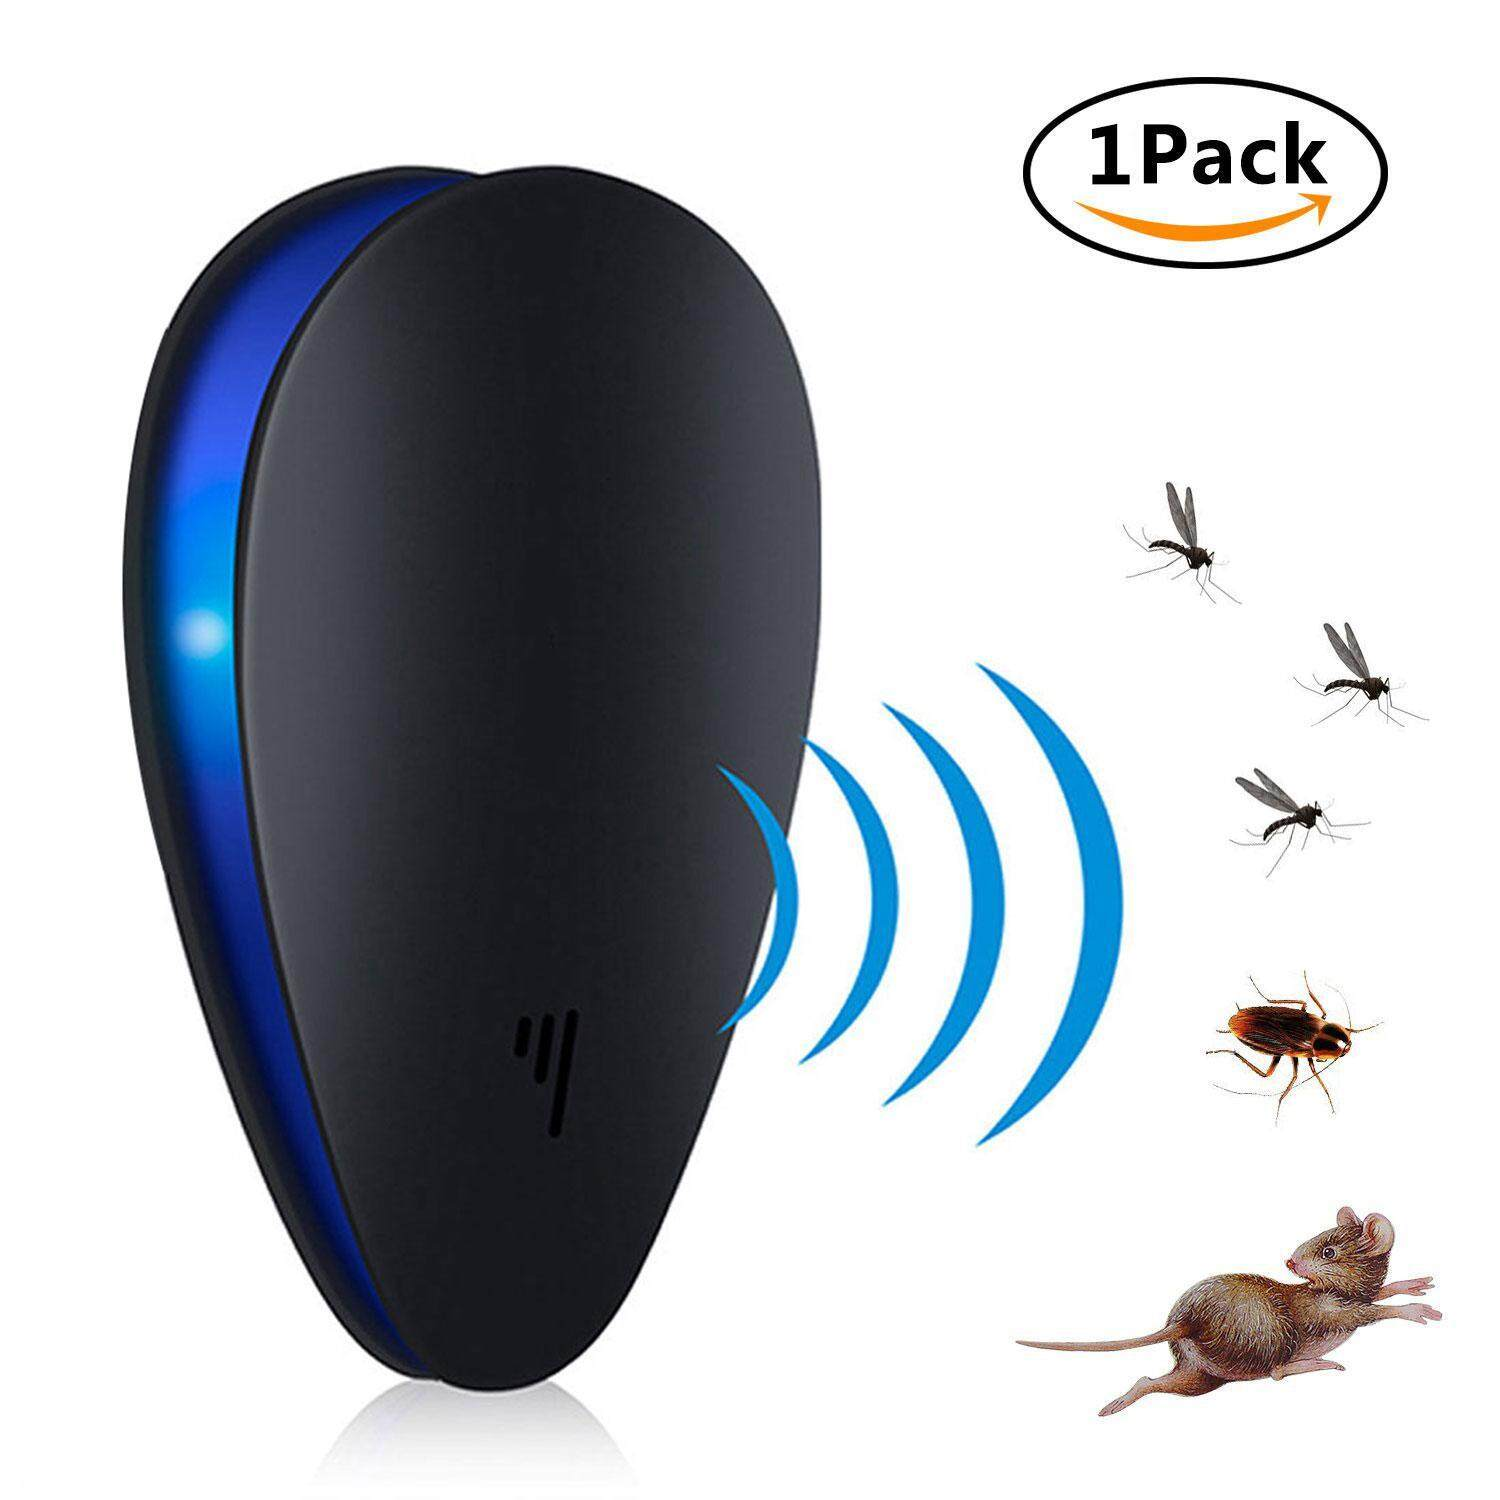 Vankel Ultrasonic Pest Repeller Pest Reject Enhanced Version, Mosquito Pest Control Plug In Rat Repellent Indoor For Insects, Ultrasonic Anti Mosquito Rat Mouse Cockroach Pest Insect Repellent ,uk Plug(black) By Vankel.